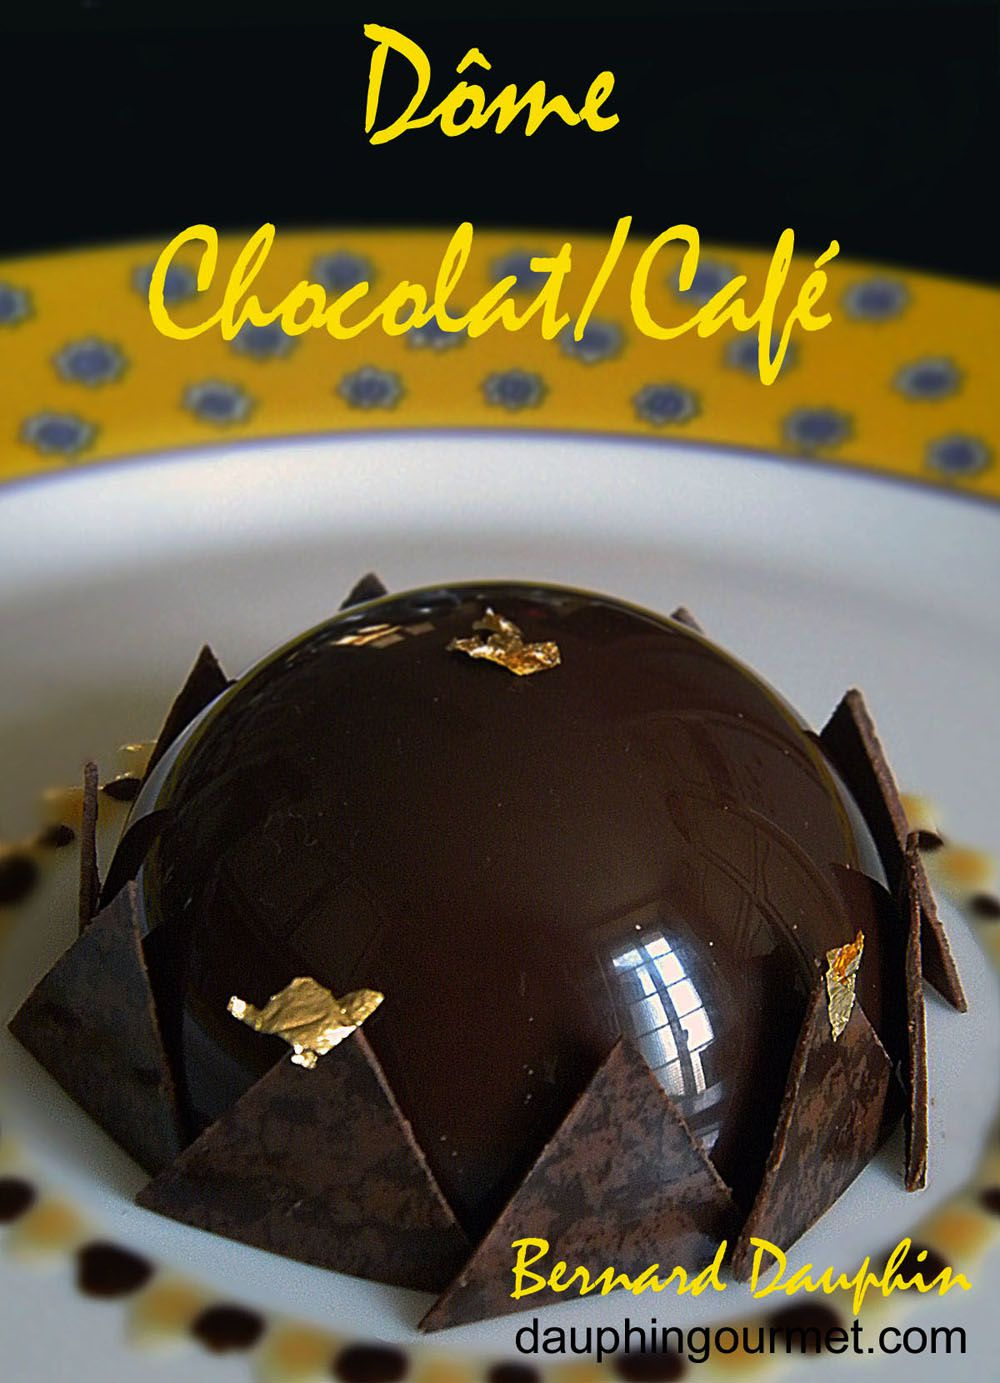 DOME CHOCOLAT CAFE